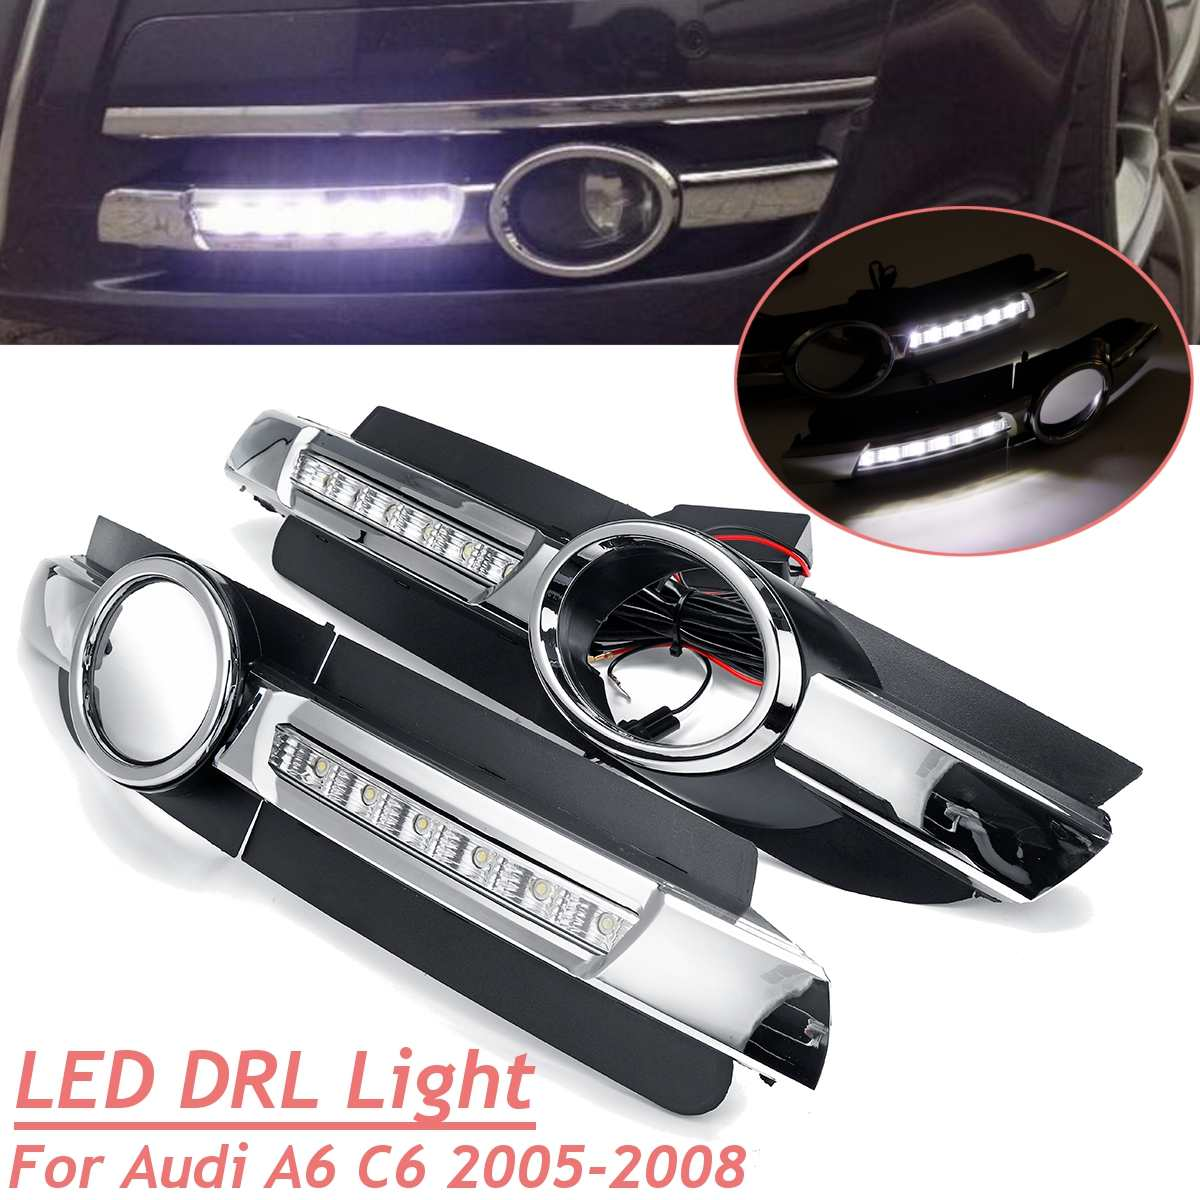 Car Front Bumper Drl Led For Audi A6 C6 2005 2006 2007 2008 Daytime  Running Light White Driving Fog Lamp Headlight AccessioriesCar Front Bumper Drl Led For Audi A6 C6 2005 2006 2007 2008 Daytime  Running Light White Driving Fog Lamp Headlight Accessiories